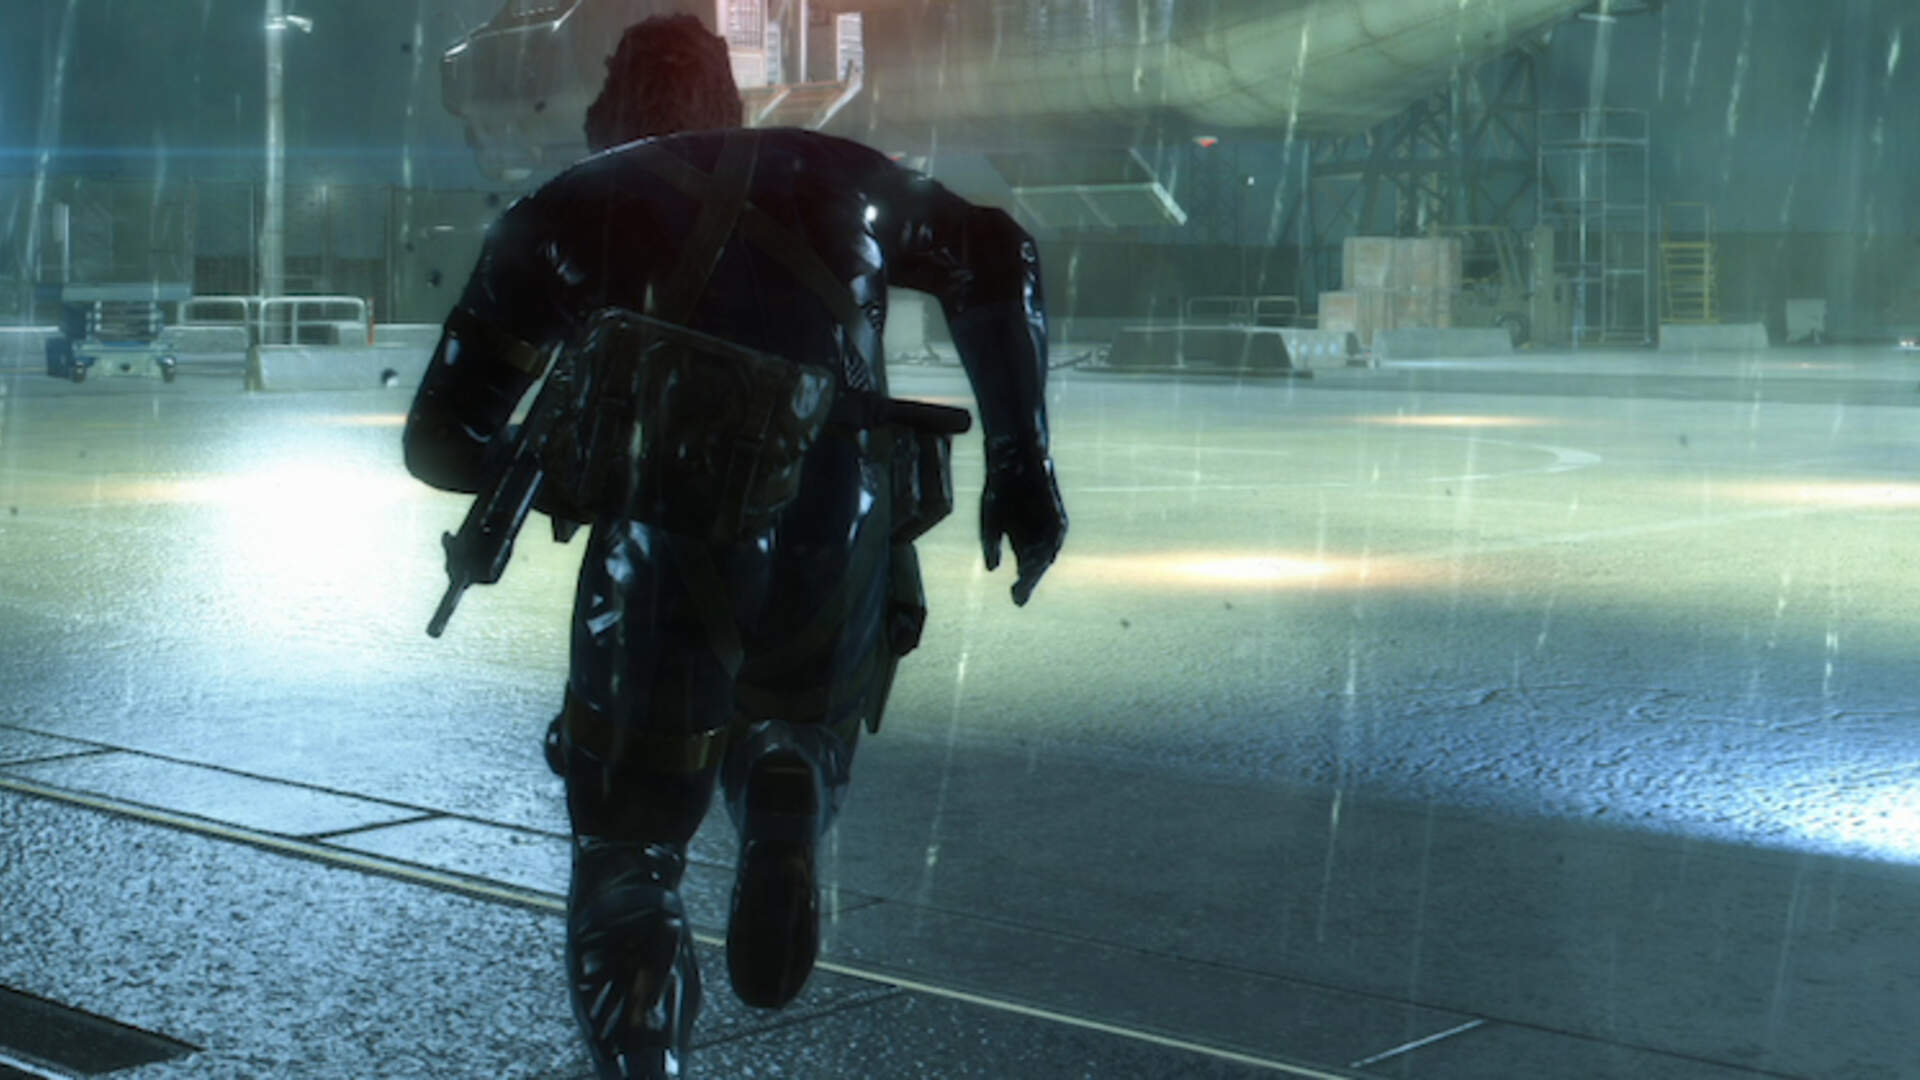 Metal Gear Solid: Ground Zeroes PS4 Review: Bring on the Main Course